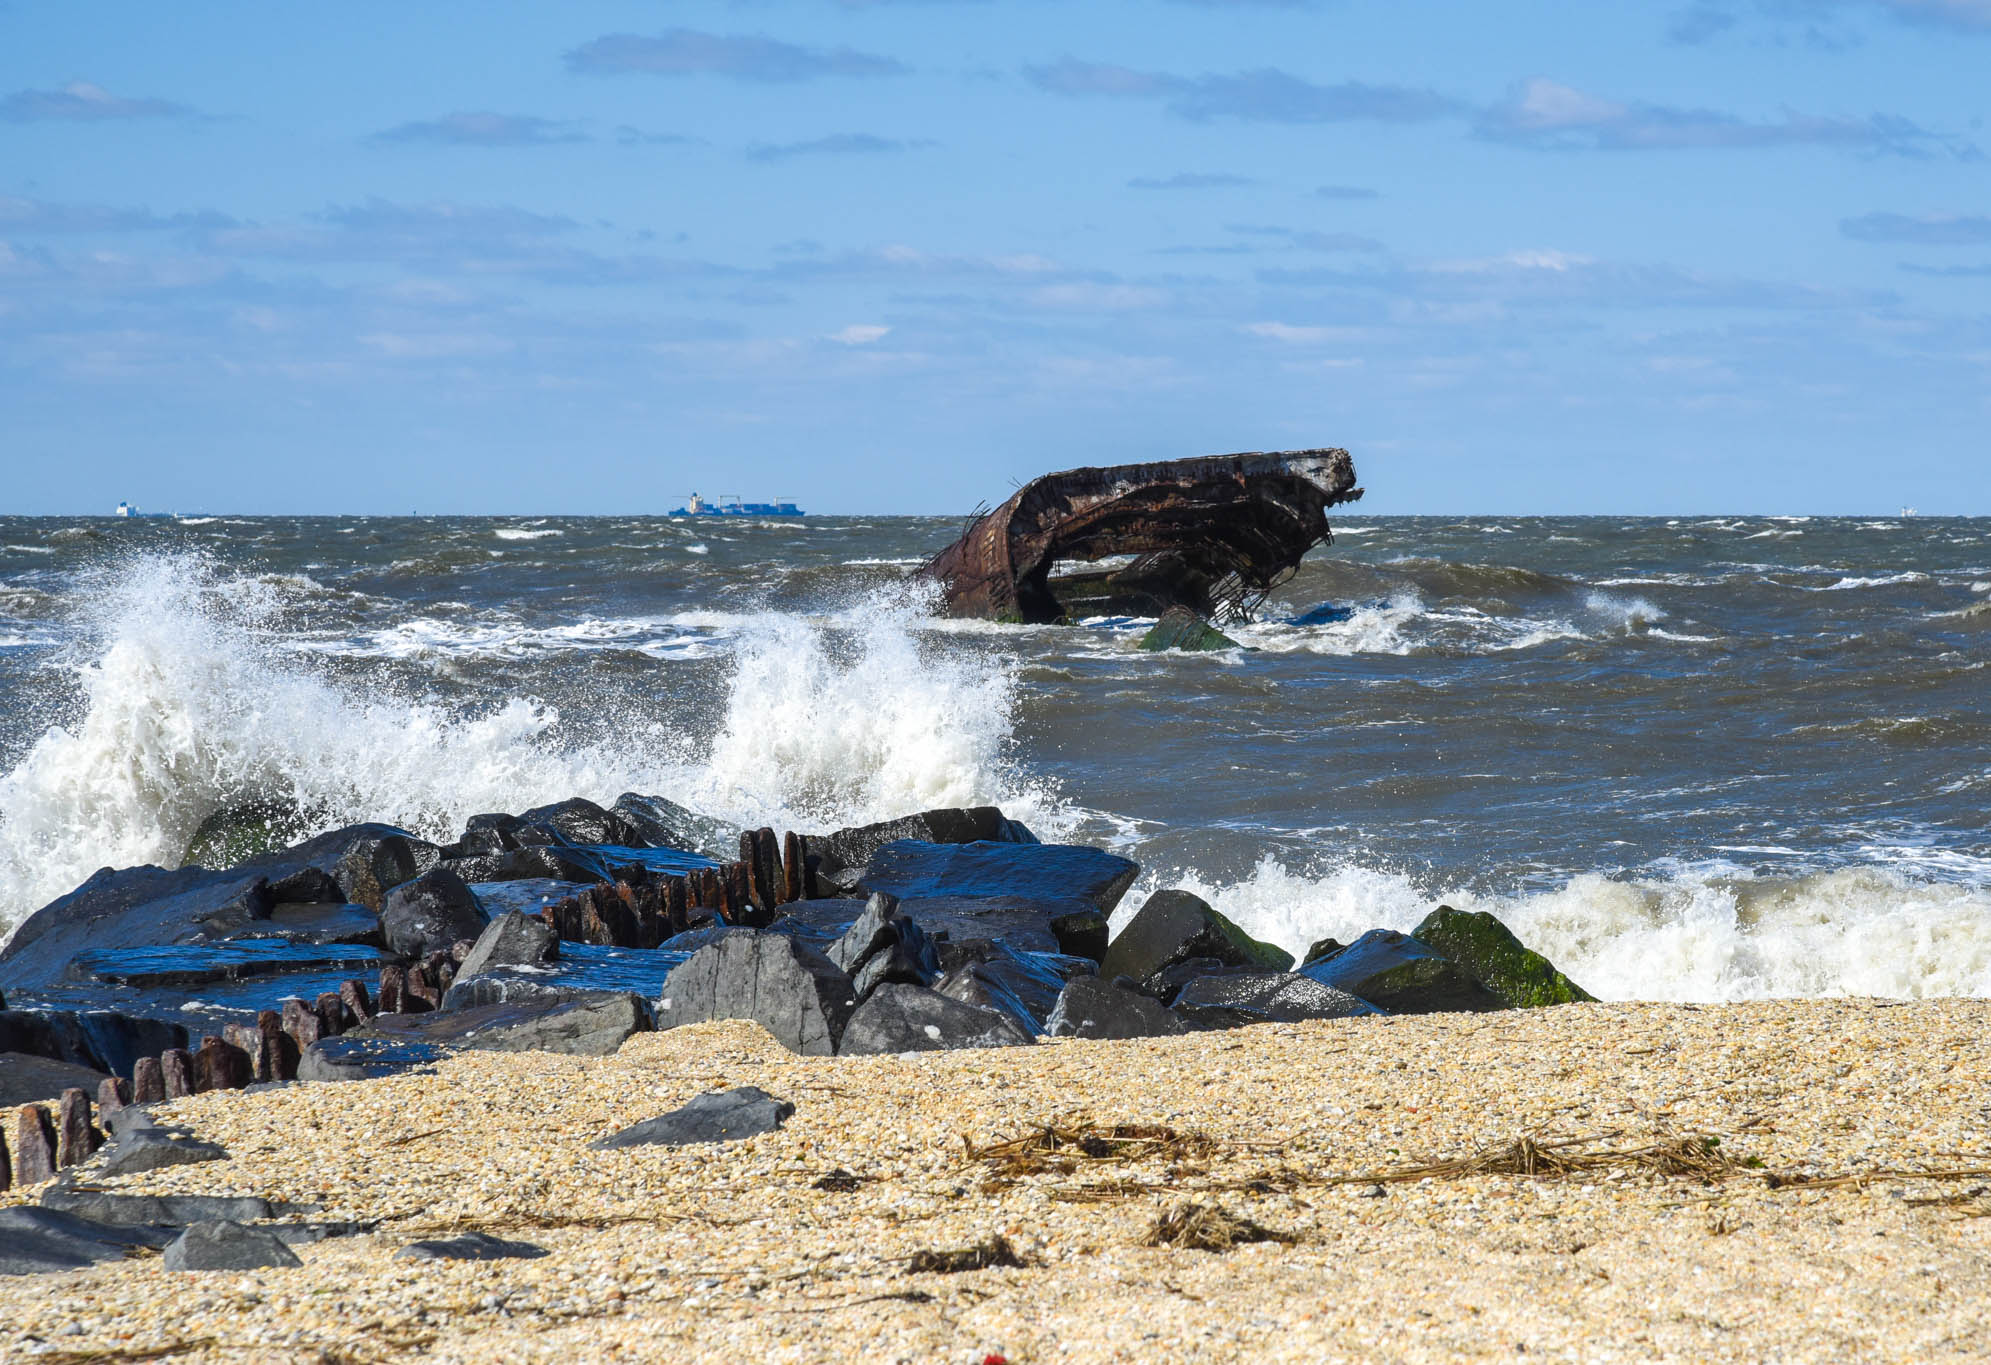 Windy Day At Sunset Beach looking at the waves crashing and the SS Atlantus